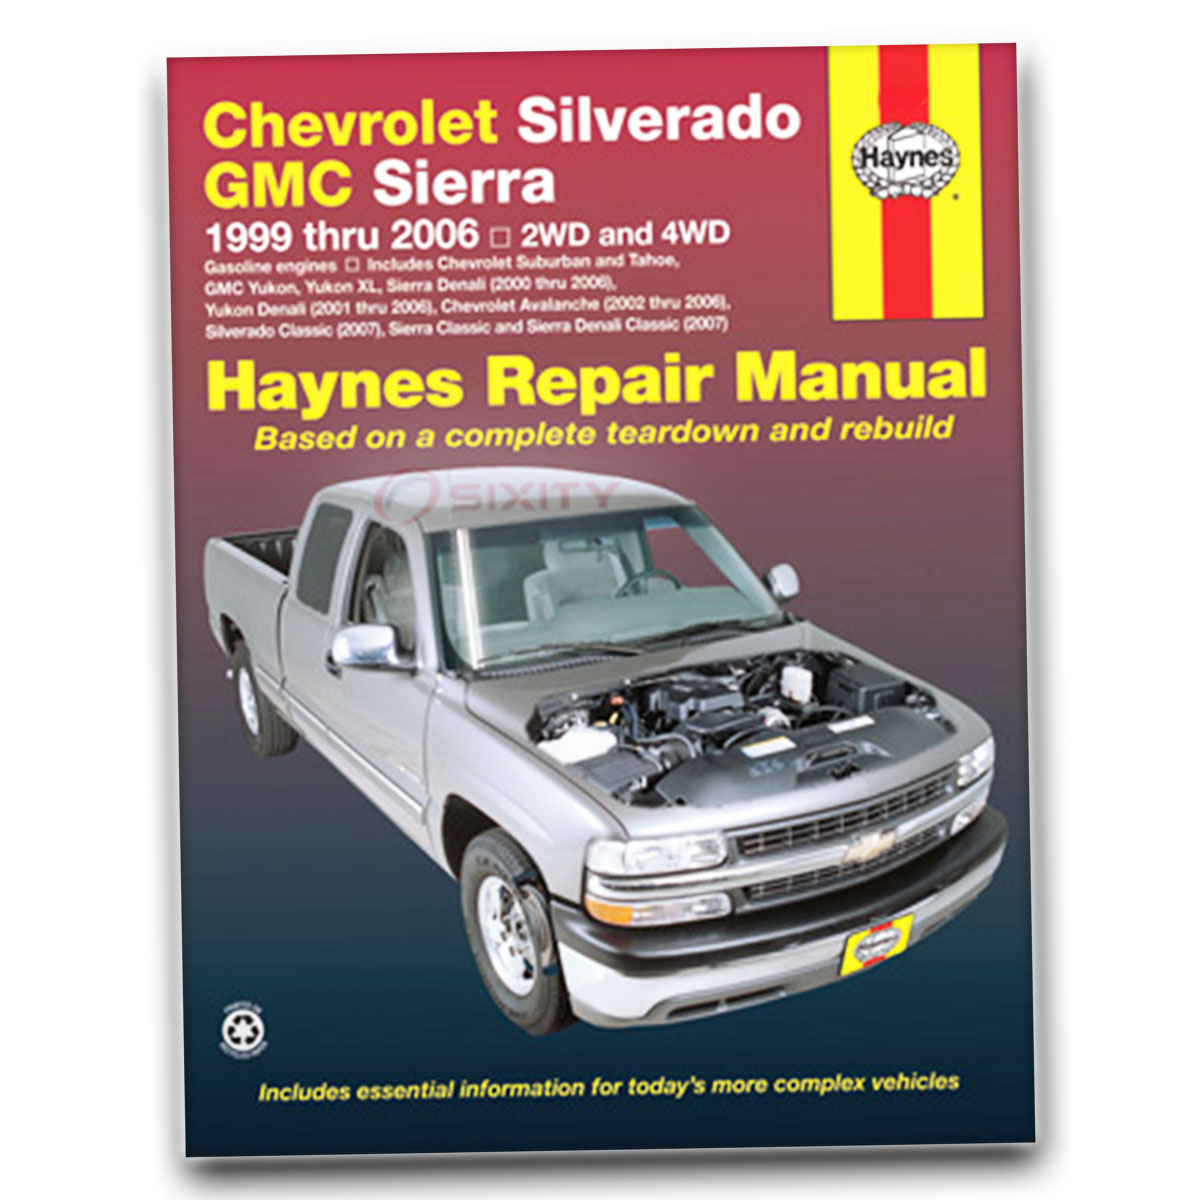 Haynes Repair Manual for Chevy Suburban 2500 LS Base LT Shop Service Garage  ld